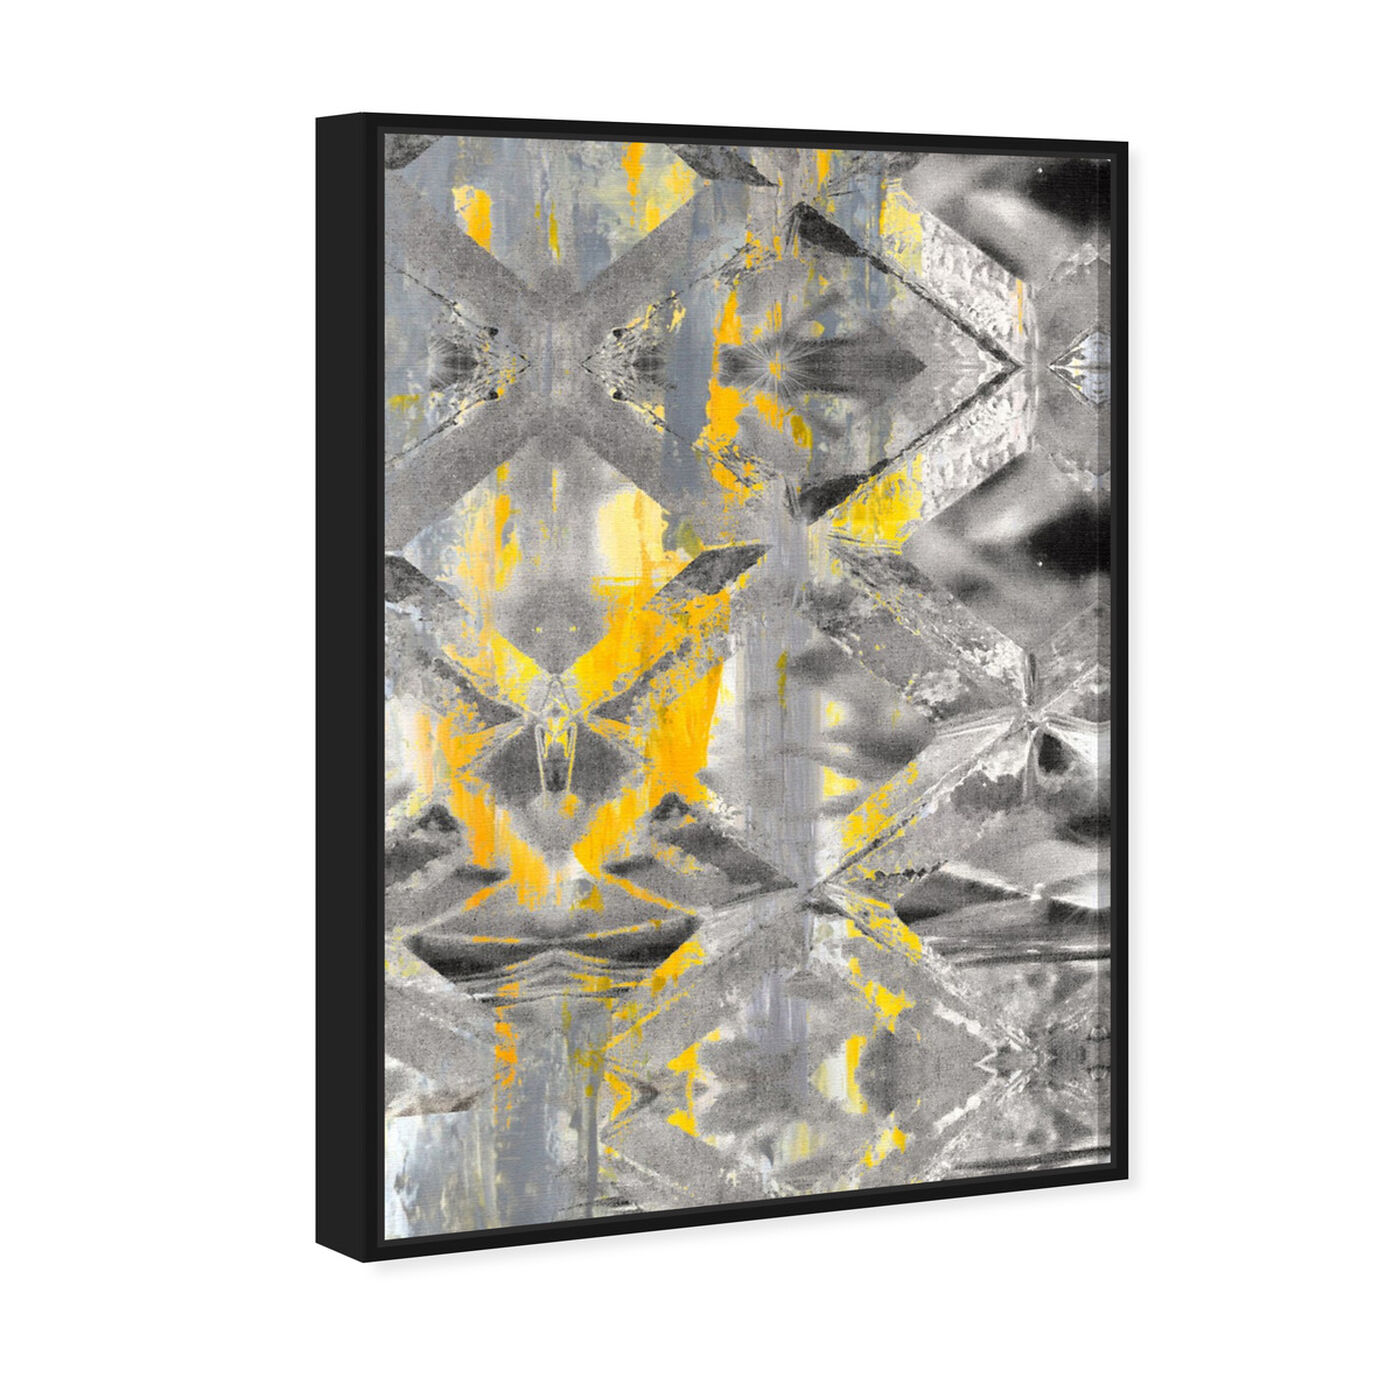 Angled view of Gris Roca featuring abstract and crystals art.